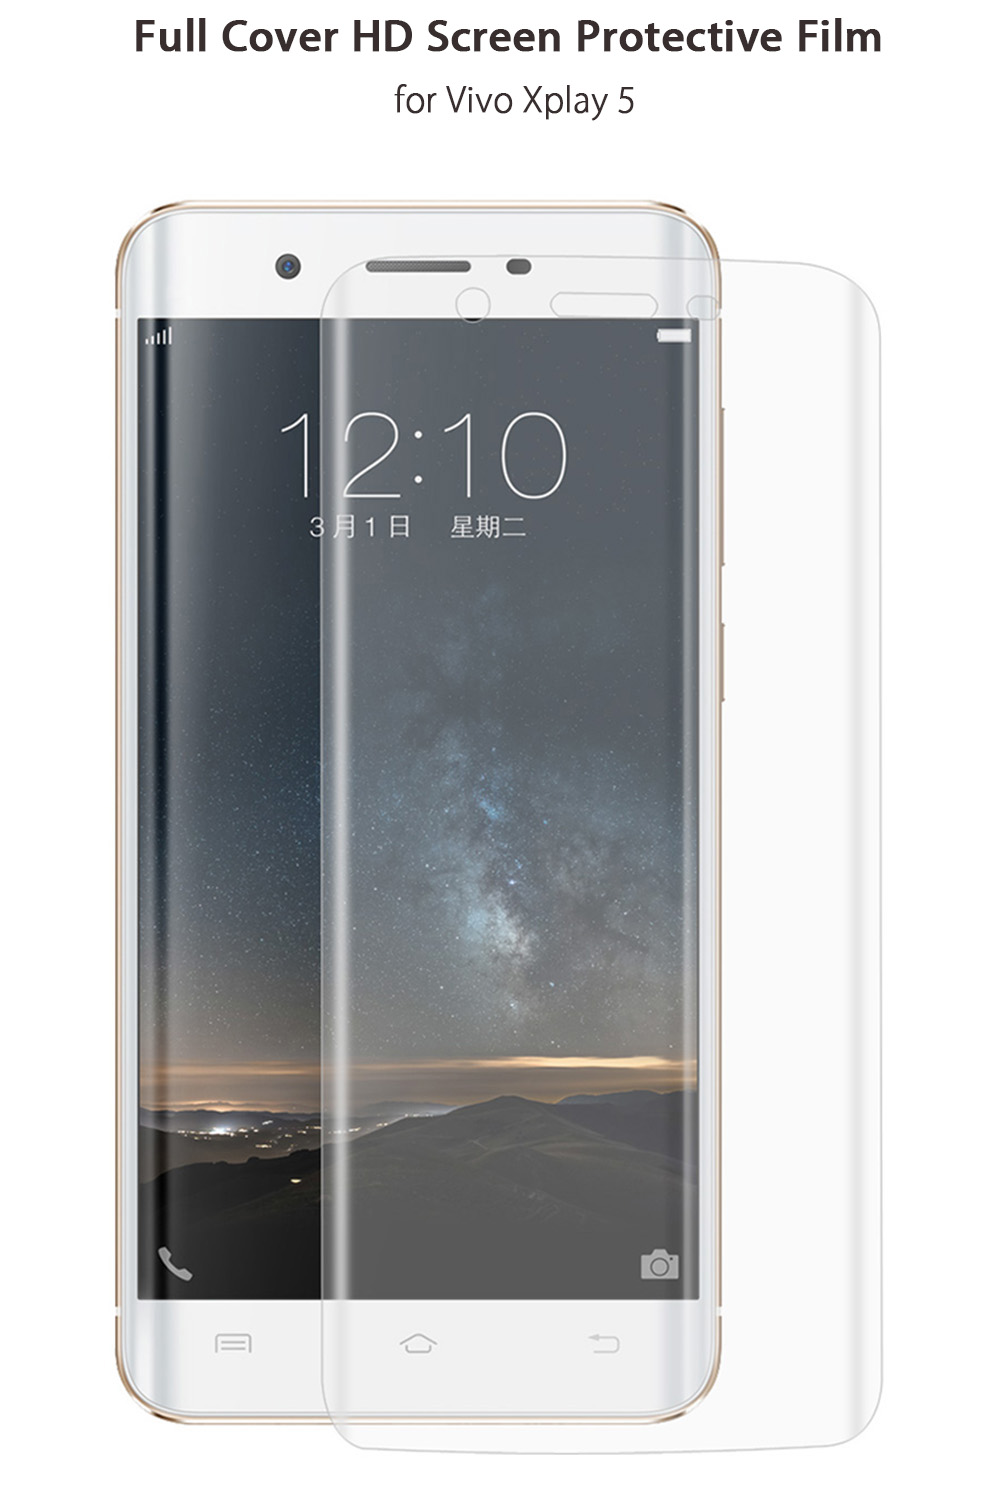 Hat - Prince Screen Protector for Vivo Xplay 5 Clear HD Full Cover Film